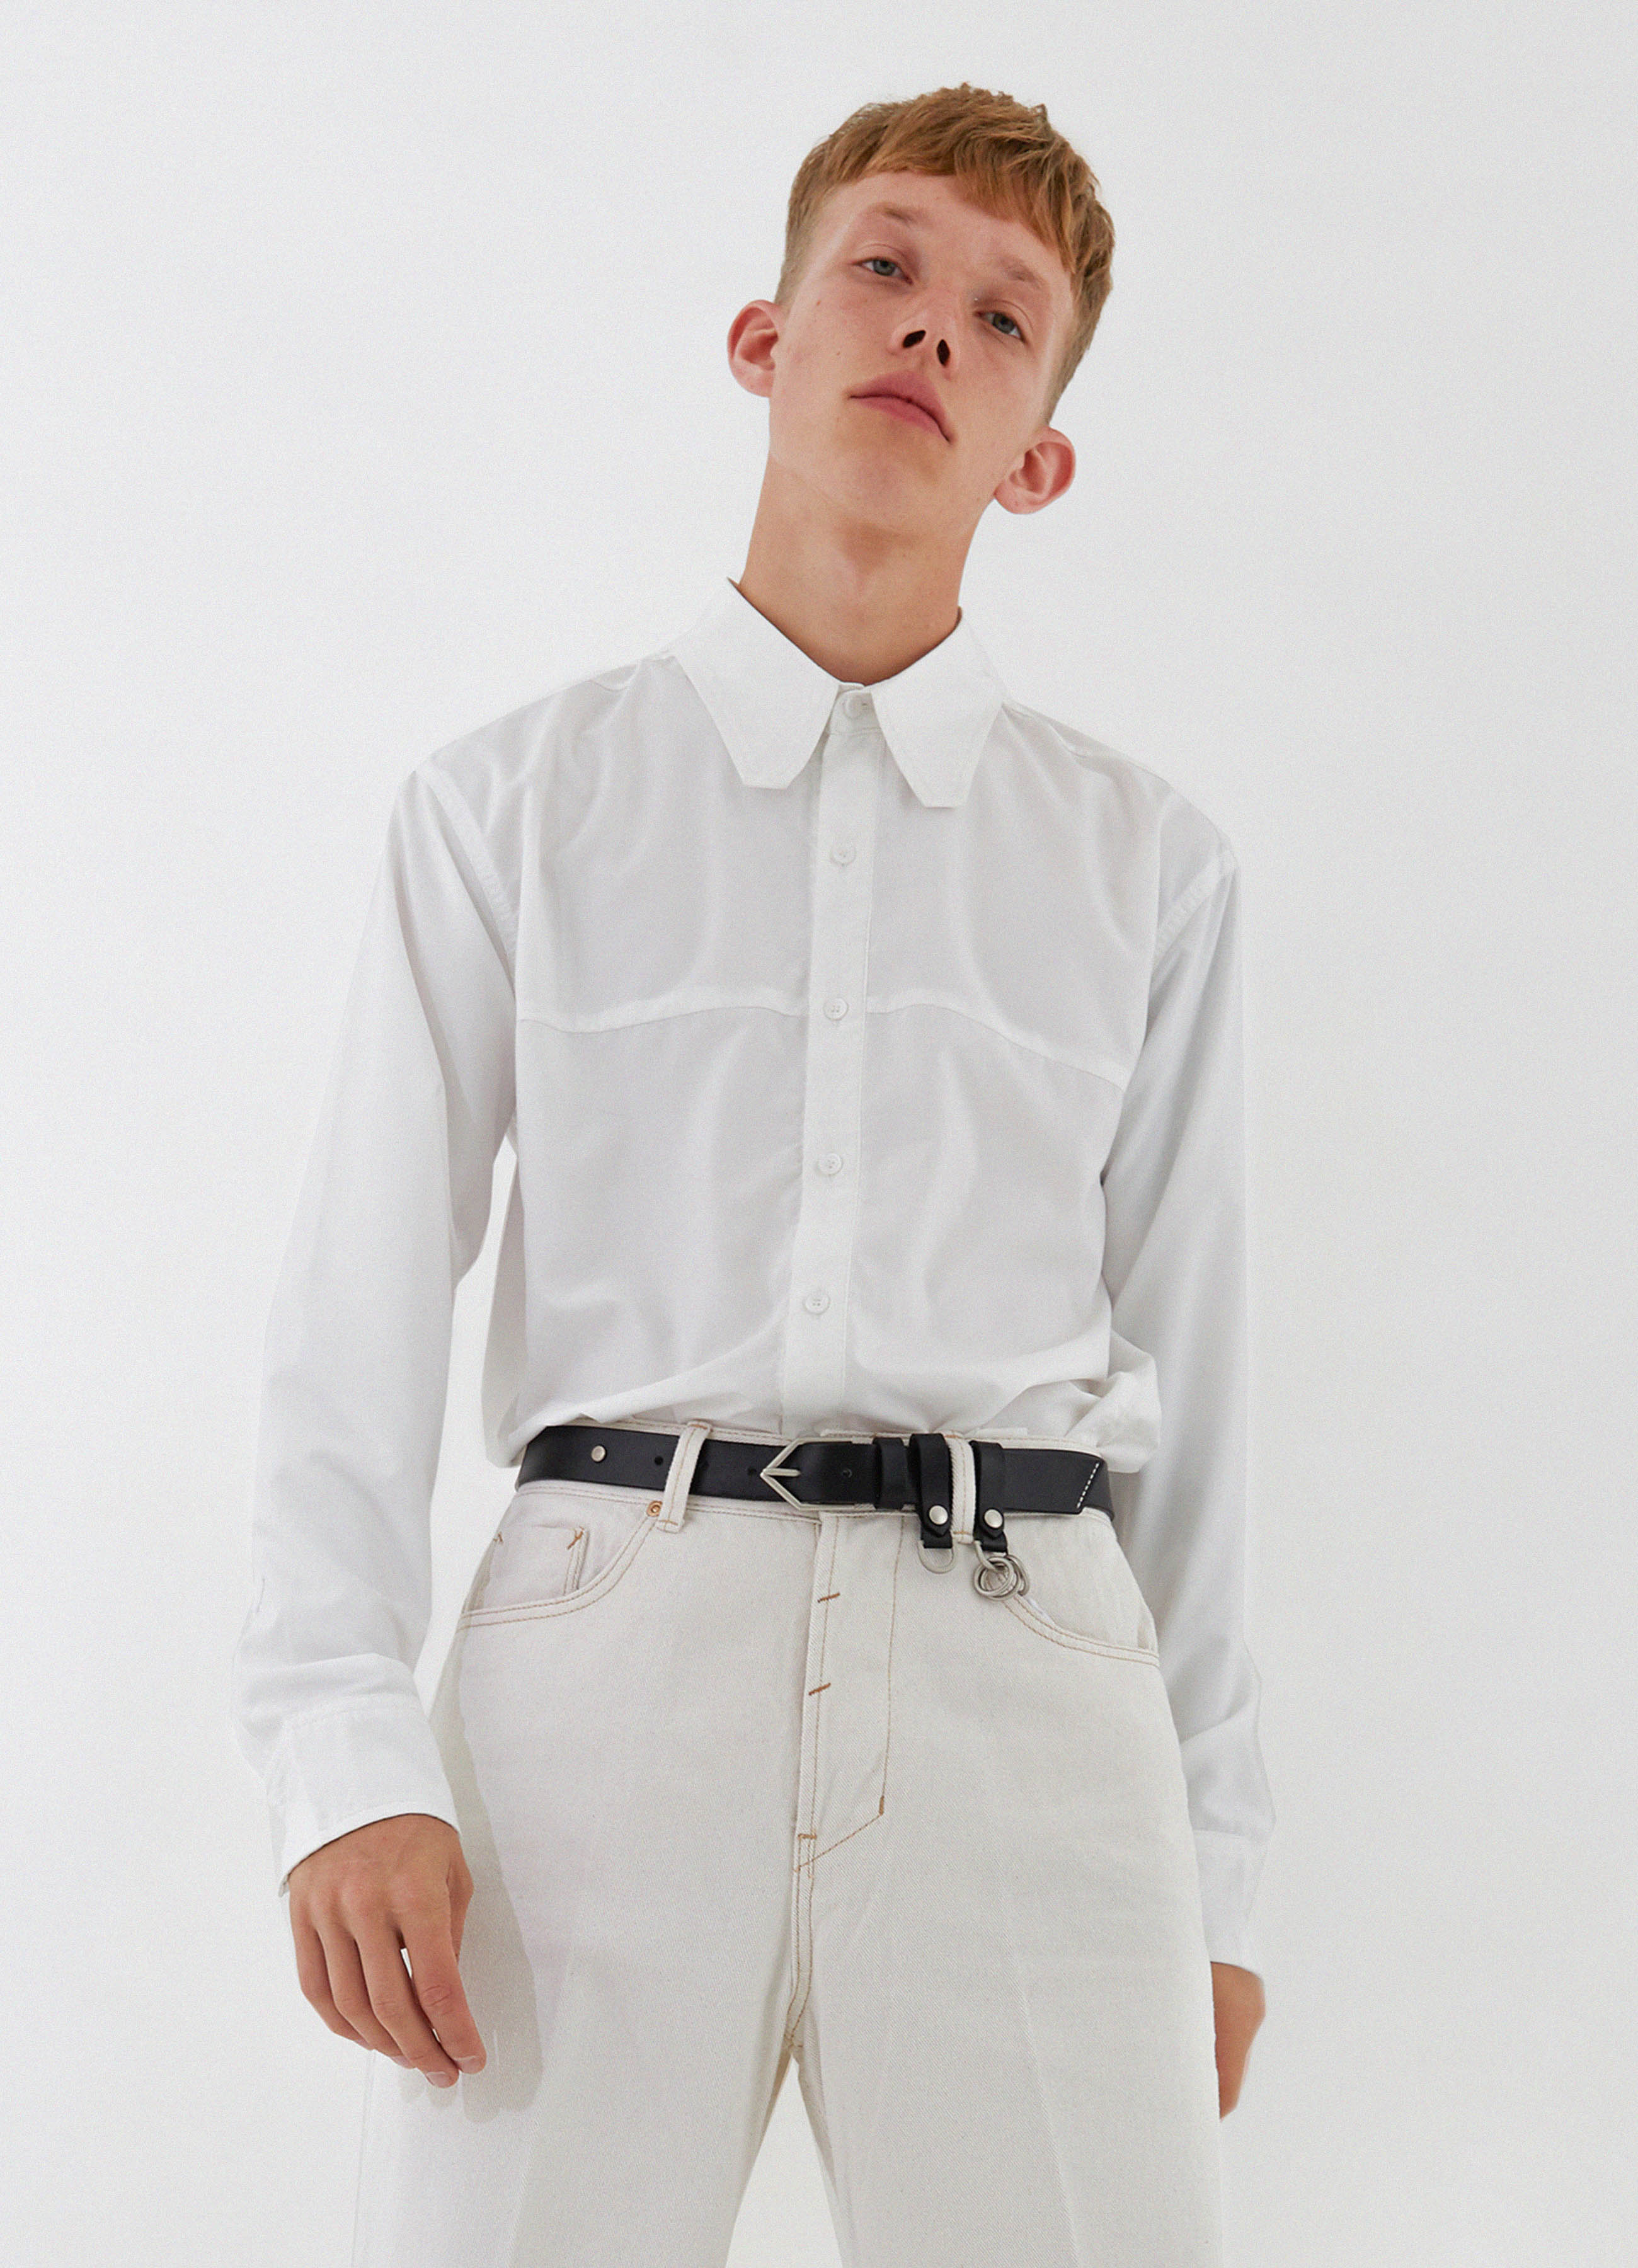 Square Collar Shirt (Ivory)